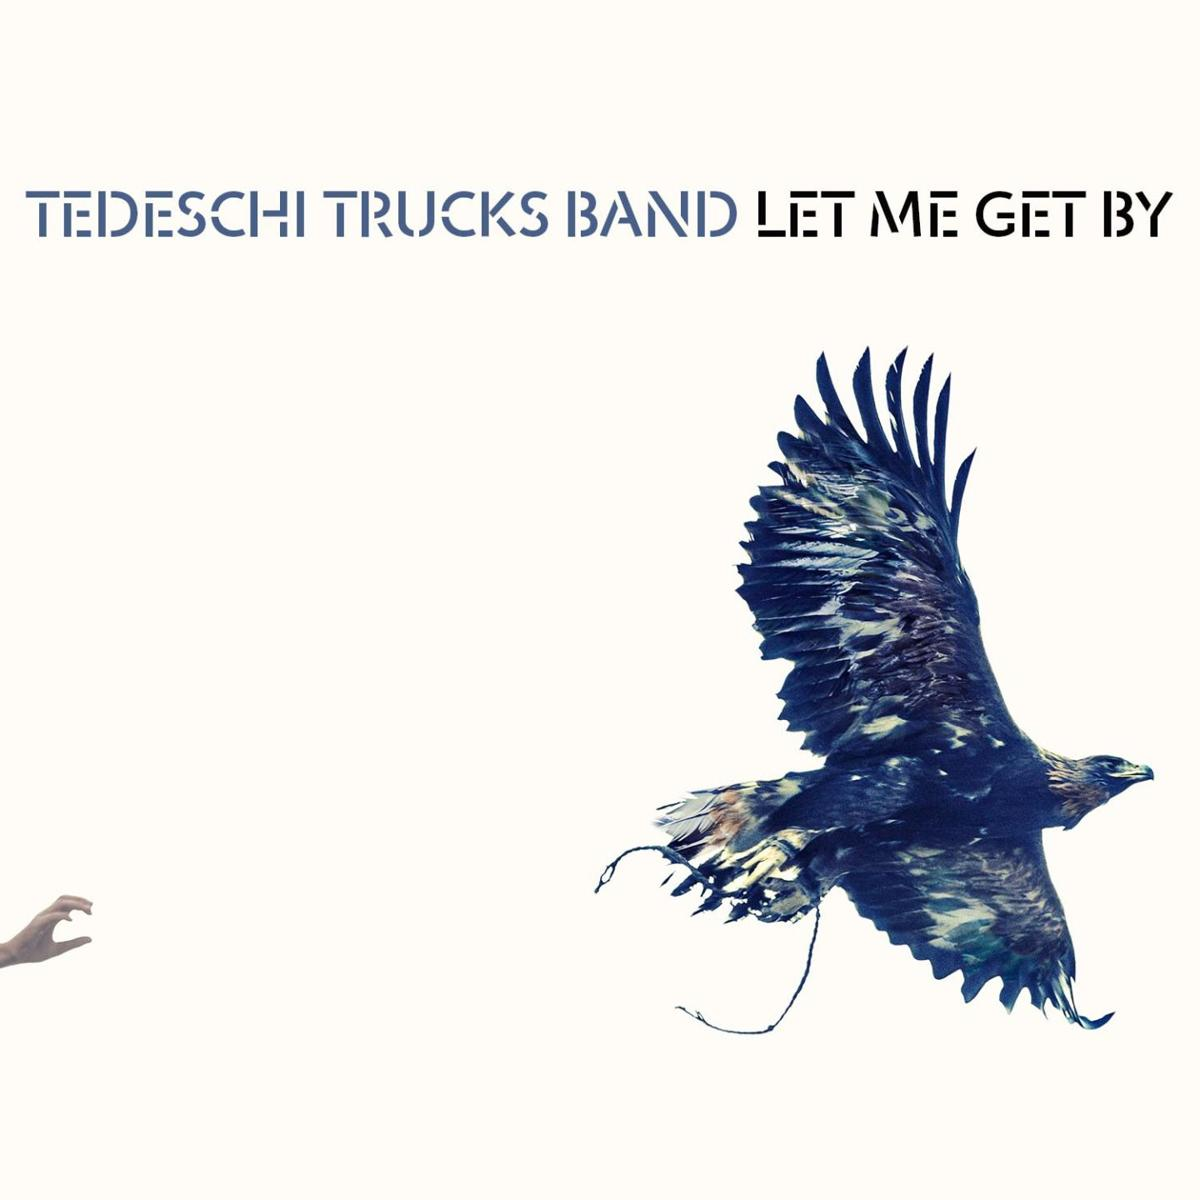 Tedeschi Trucks Band, Southern Ground festival headliner, proves excellence with new record